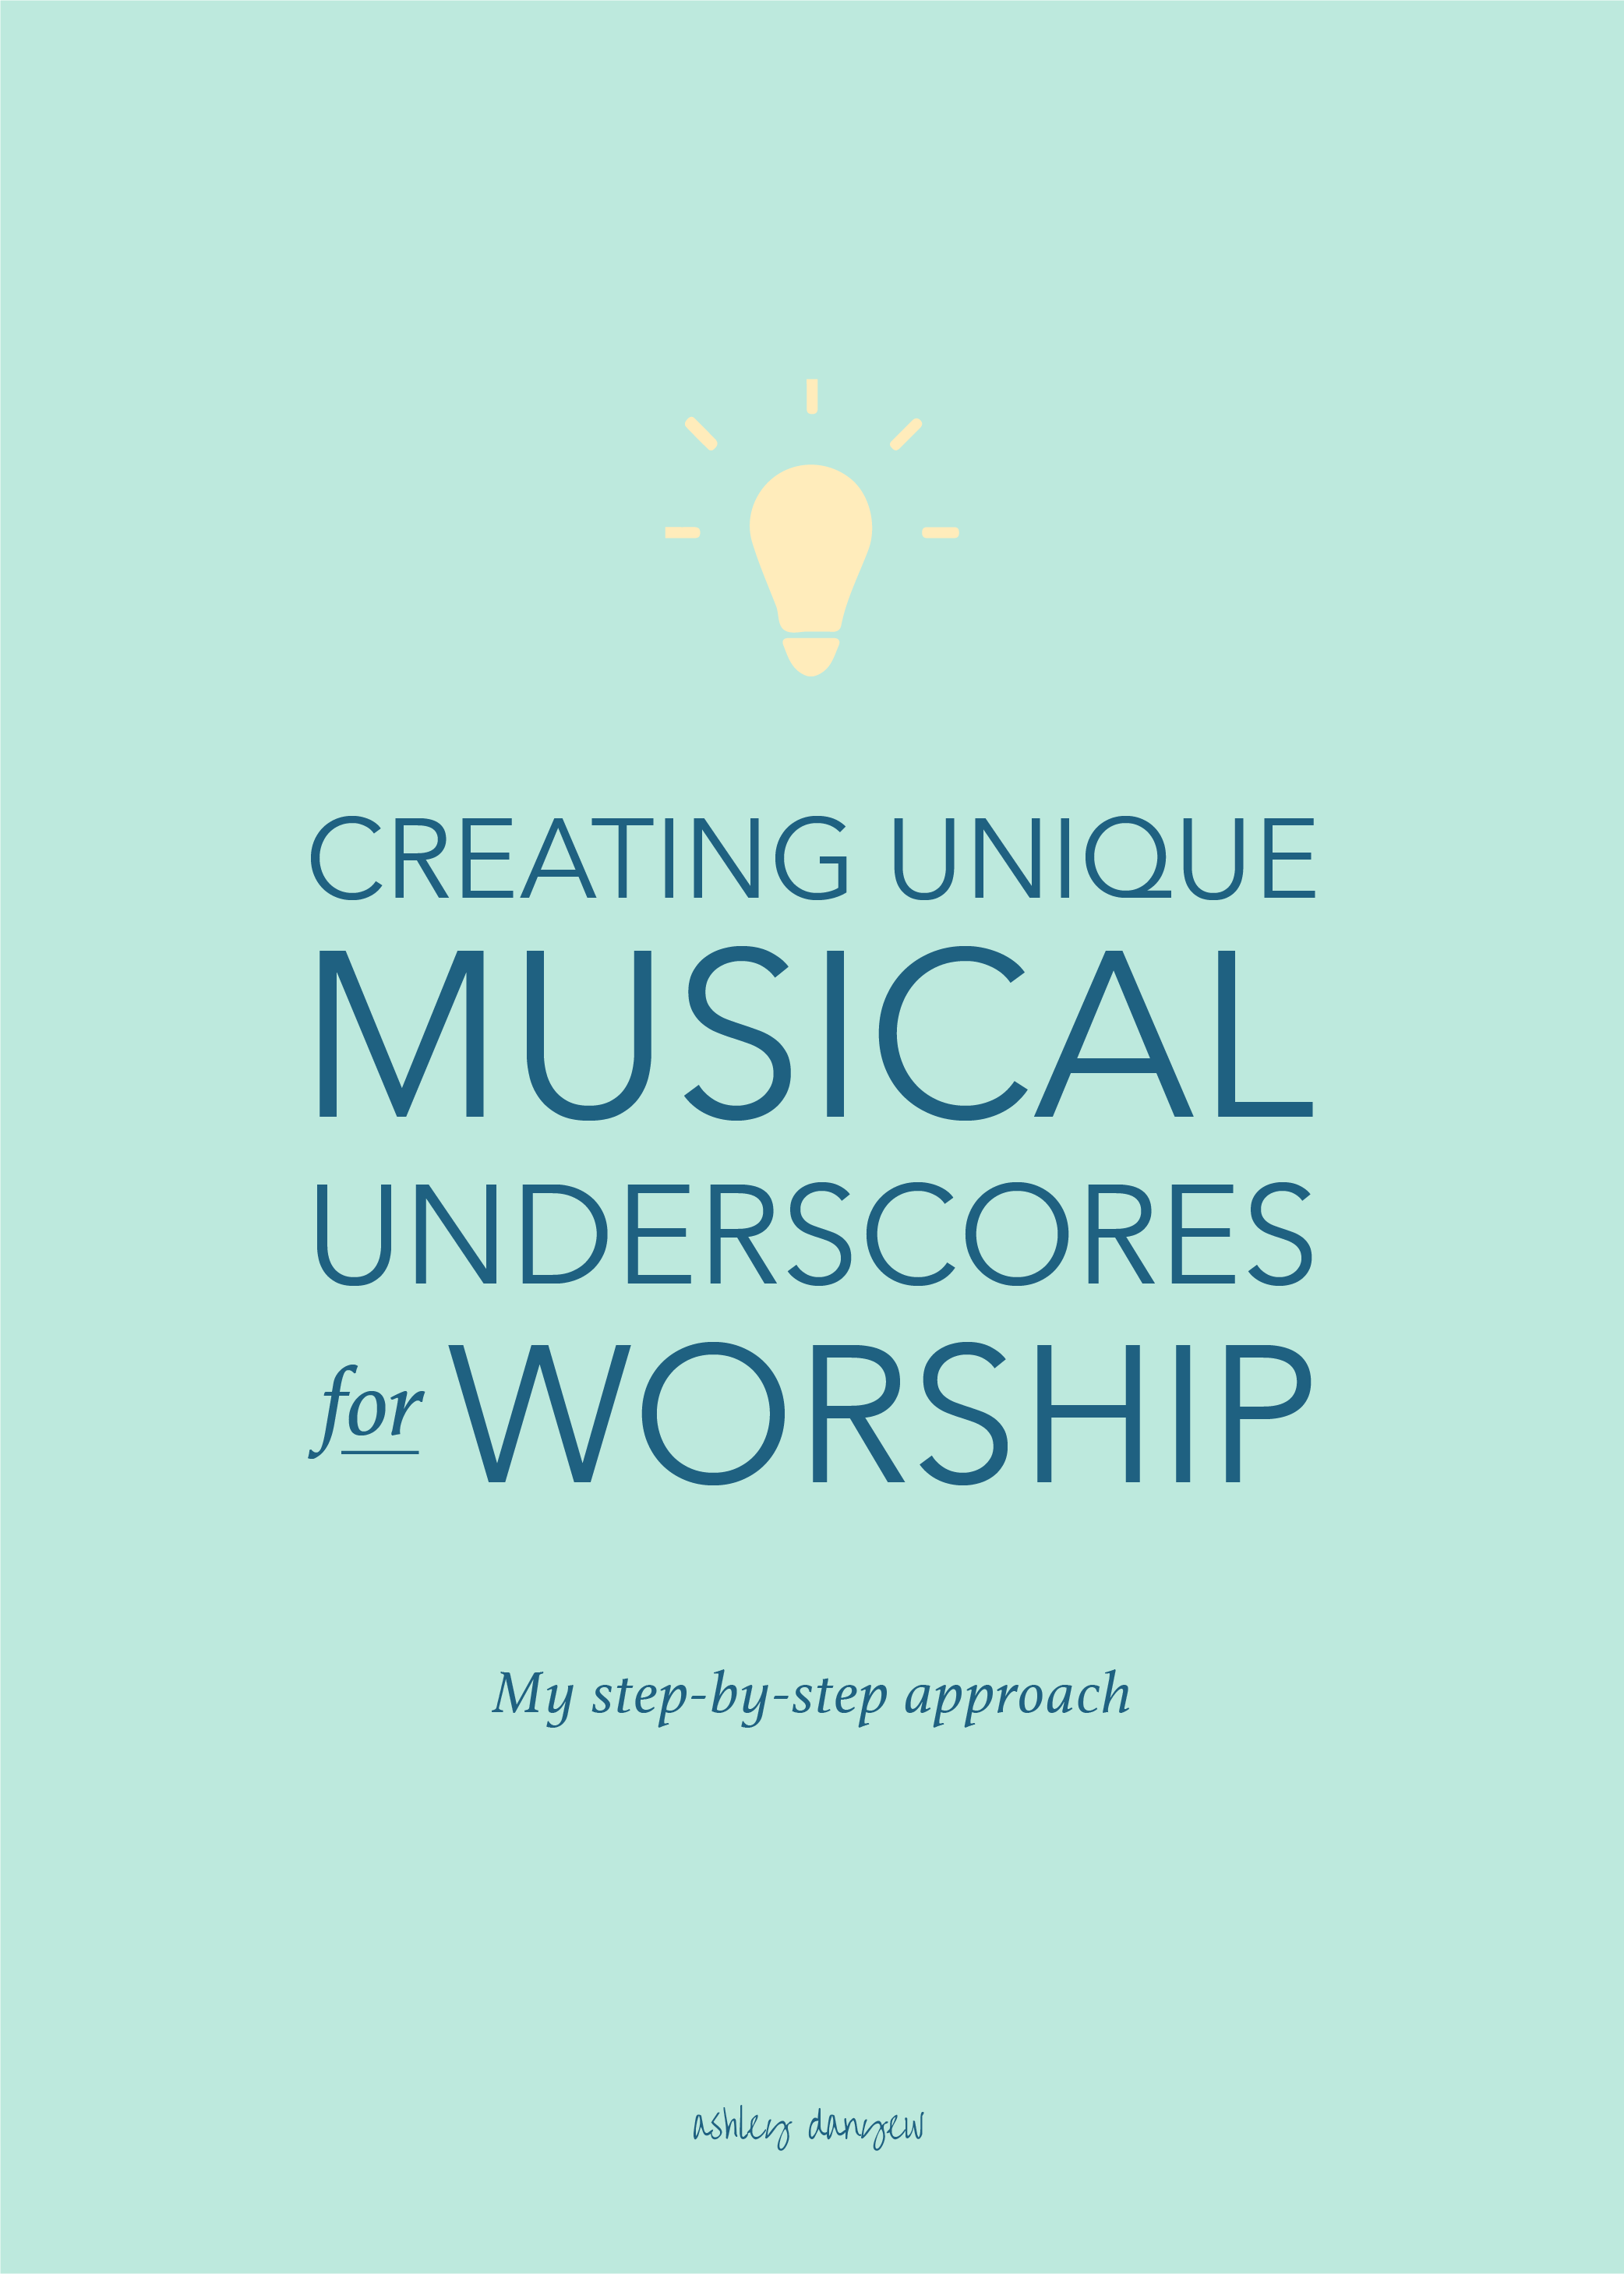 Creating Unique Musical Underscores for Worship-59.png